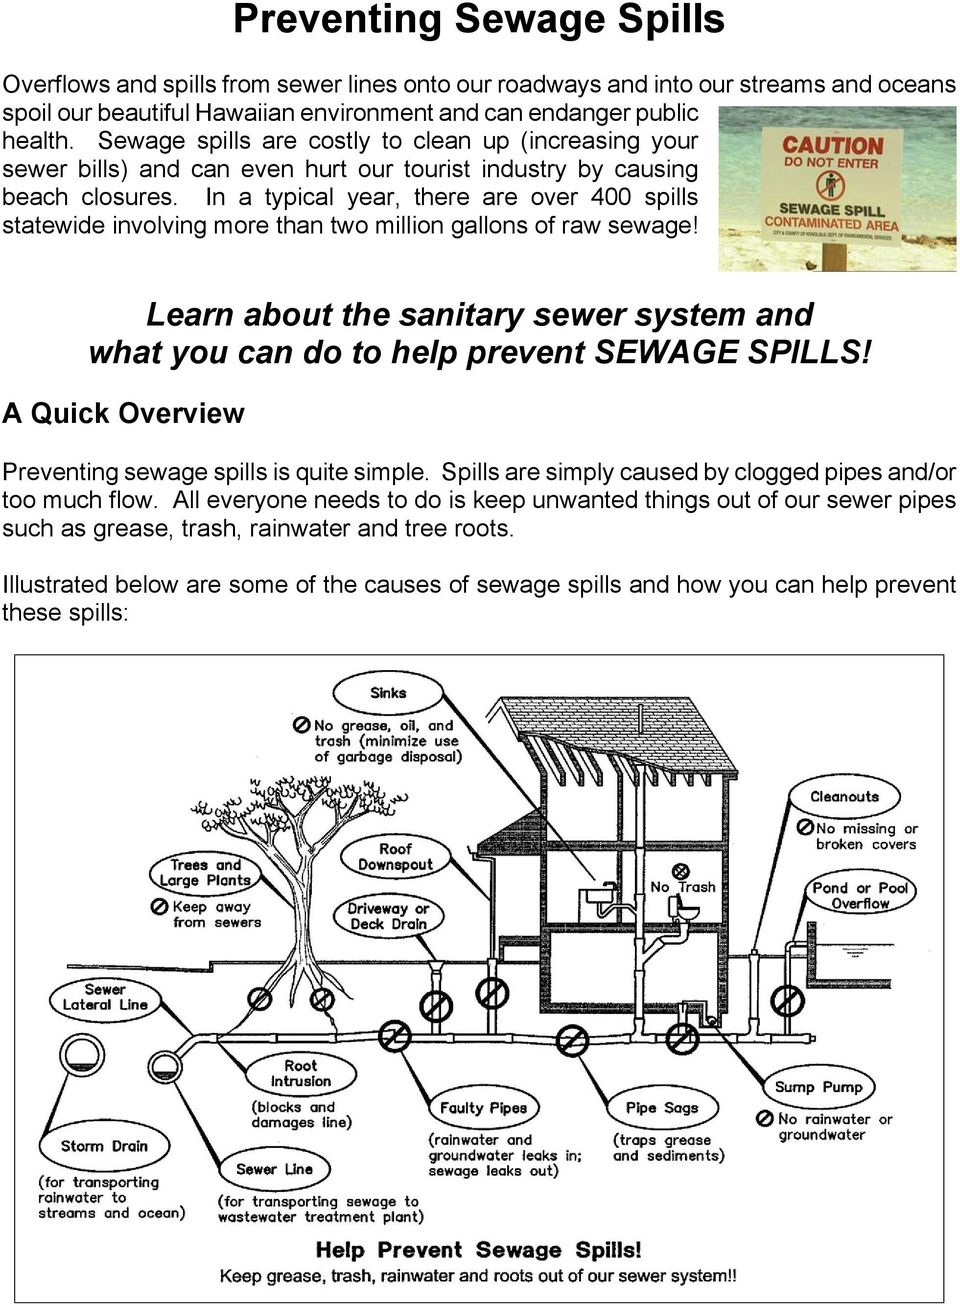 In a typical year, there are over 400 spills statewide involving more than two million gallons of raw sewage! Learn about the sanitary sewer system and what you can do to help prevent SEWAGE SPILLS!